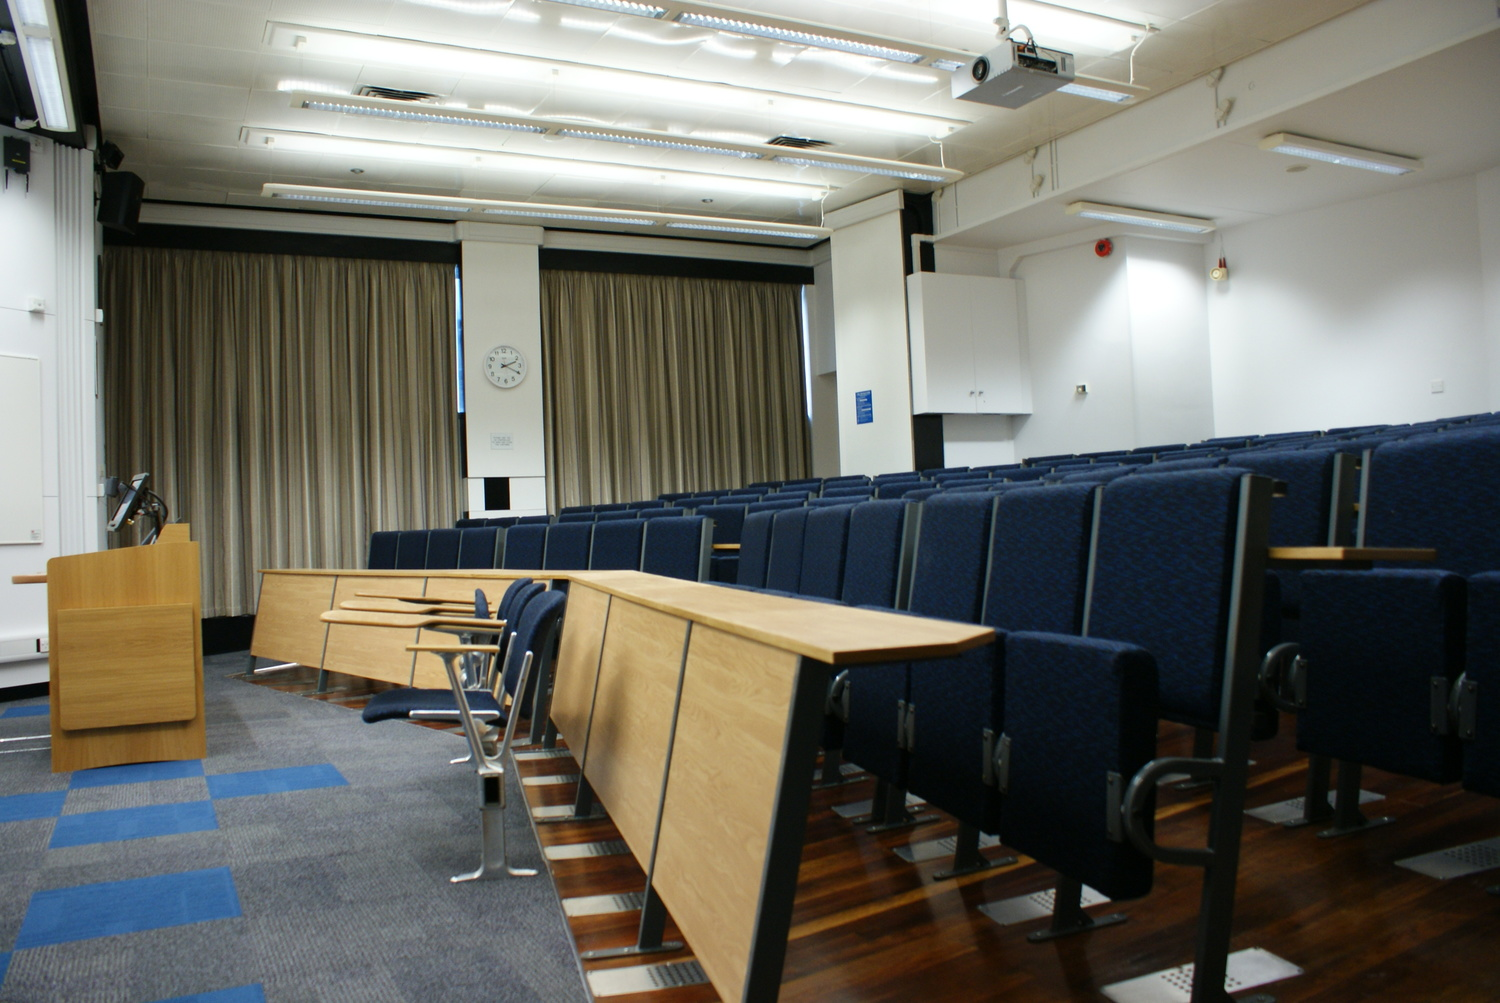 Agilent Lecture Theatre, Electrical Engineering - CTS 2013